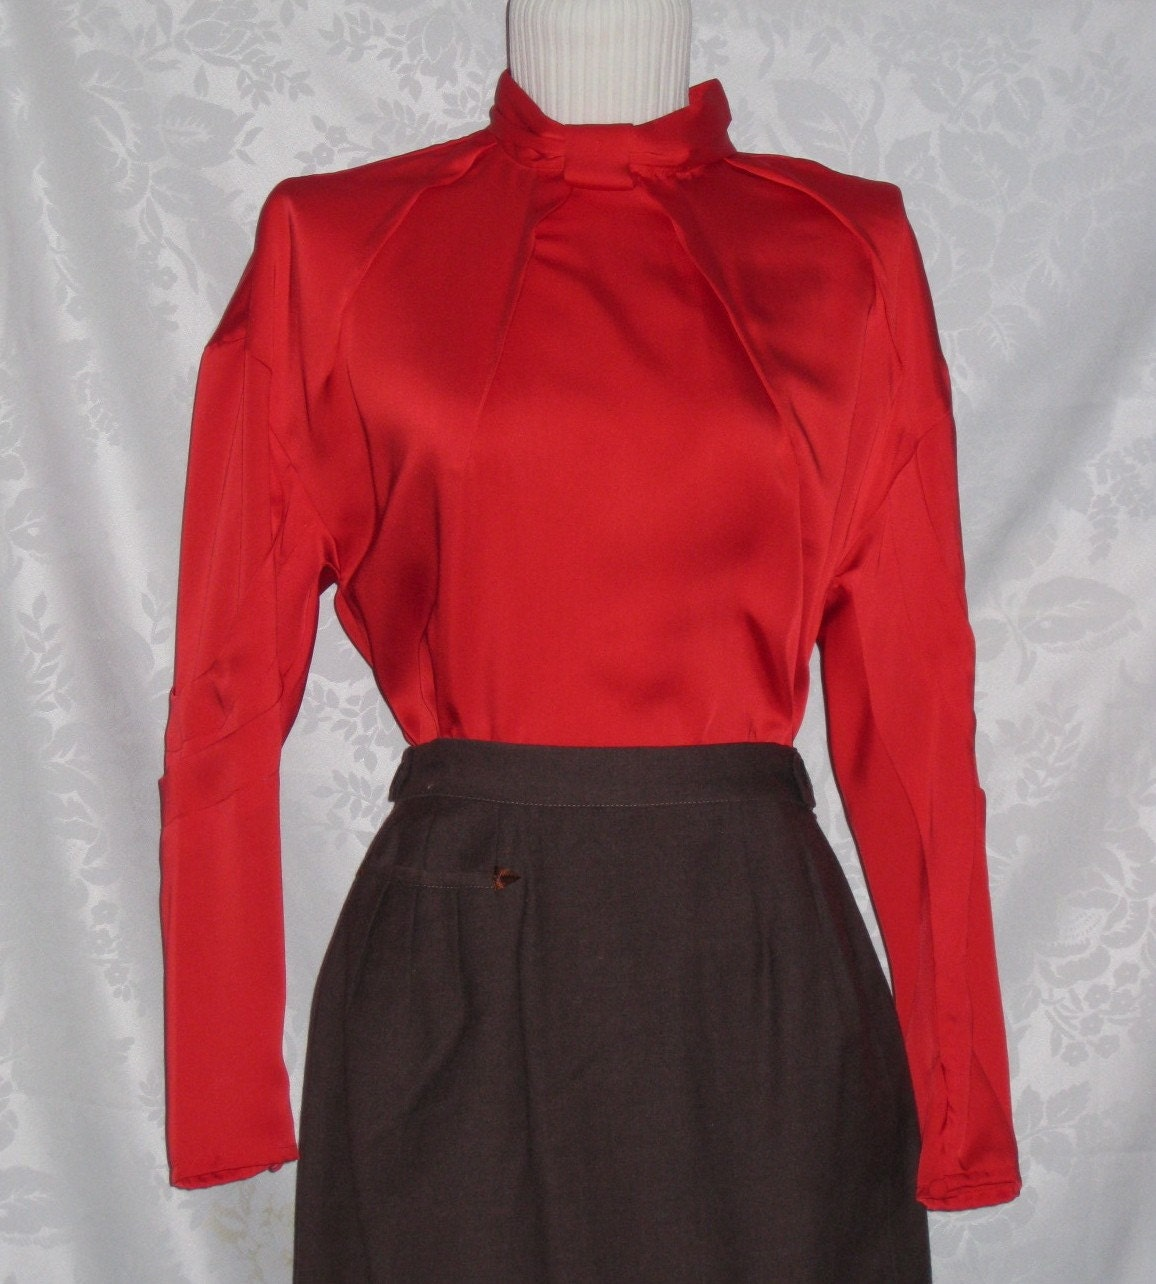 Vintage Satin Blouse